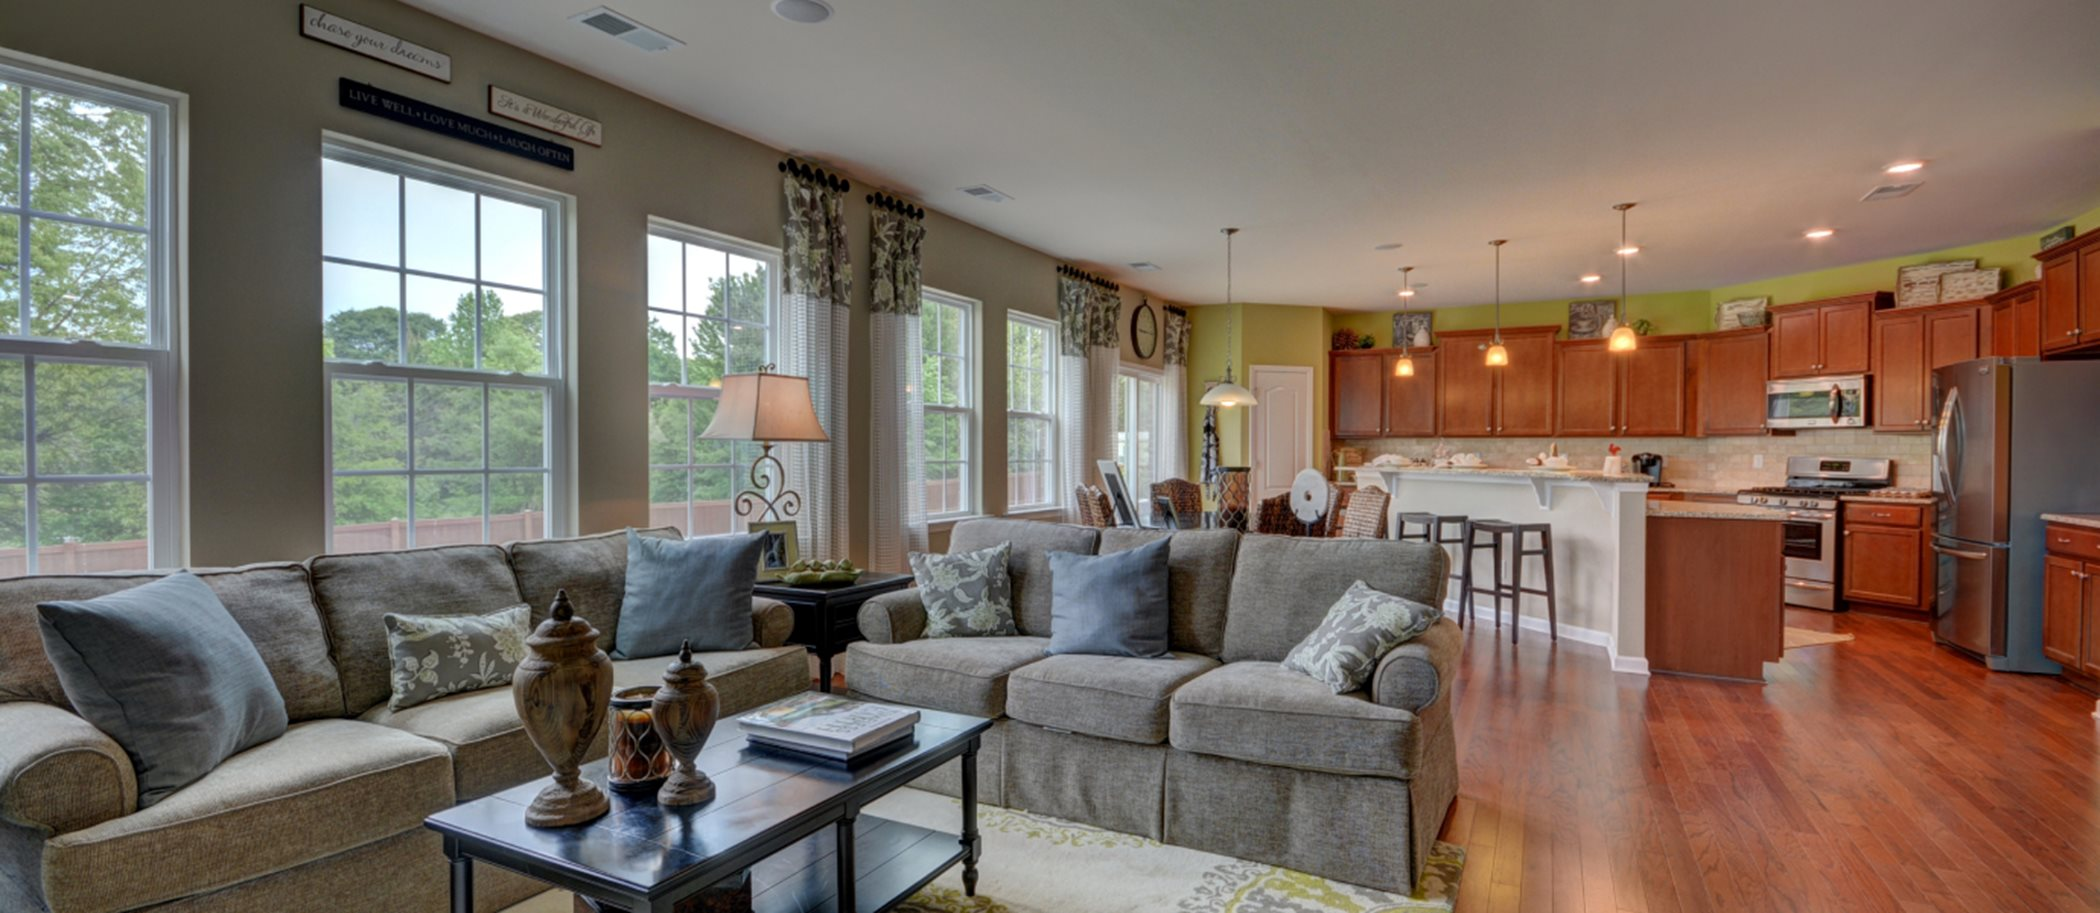 Chateau: Enclave Fairfield Family Room and Kitchen